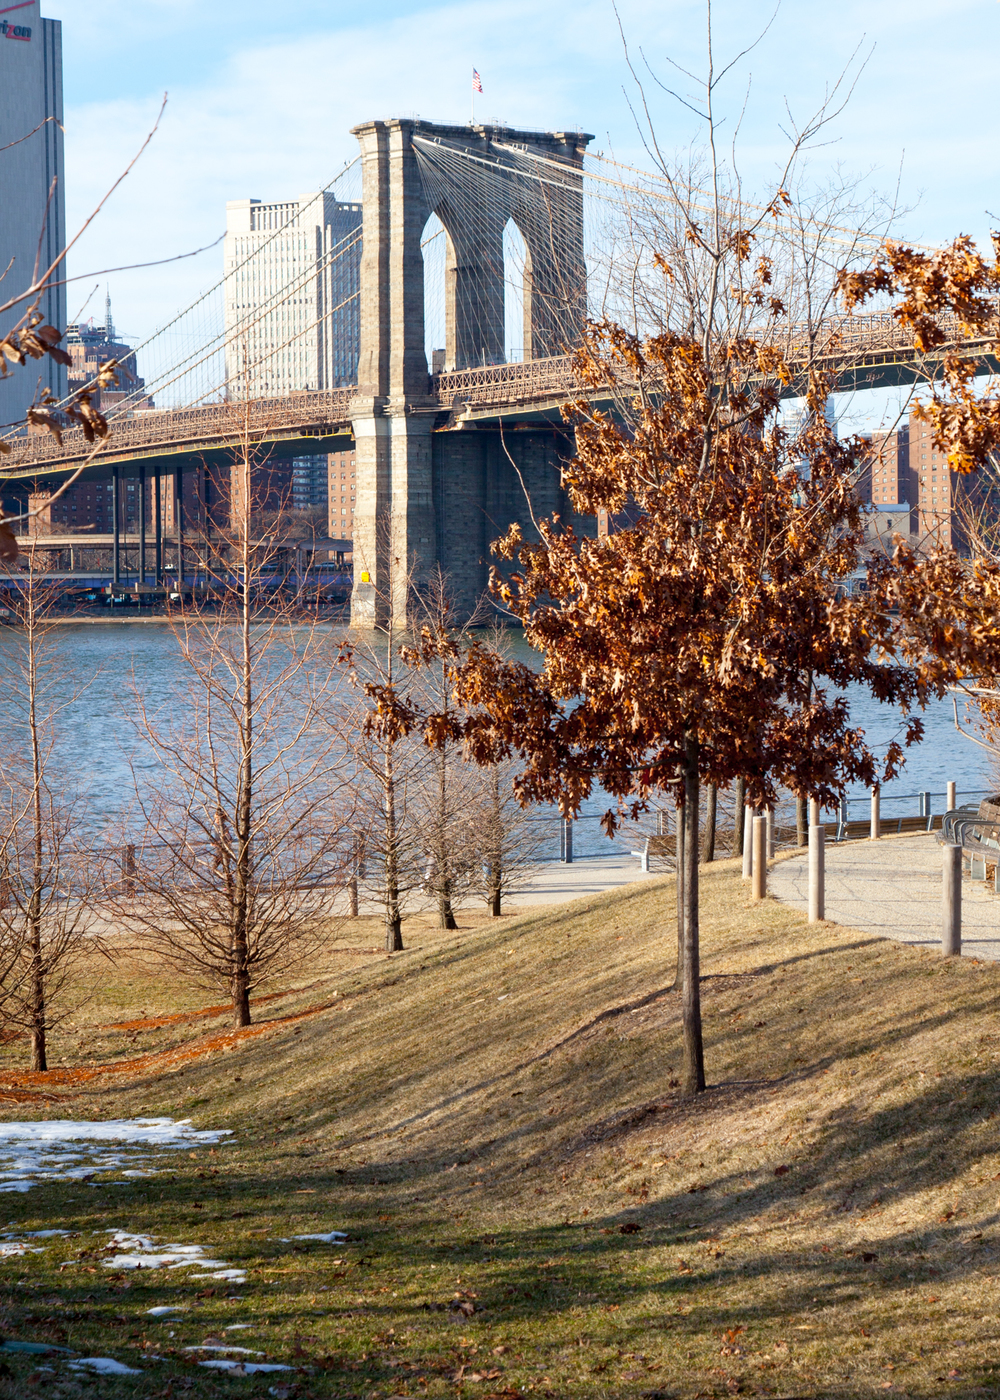 I saw this shot as we were walking back from the Brooklyn Bridge Park, towards the subway. At another time of year, it would be a great shot, but with the winter kill leaving everything brown and dead, it isn't what it could be.